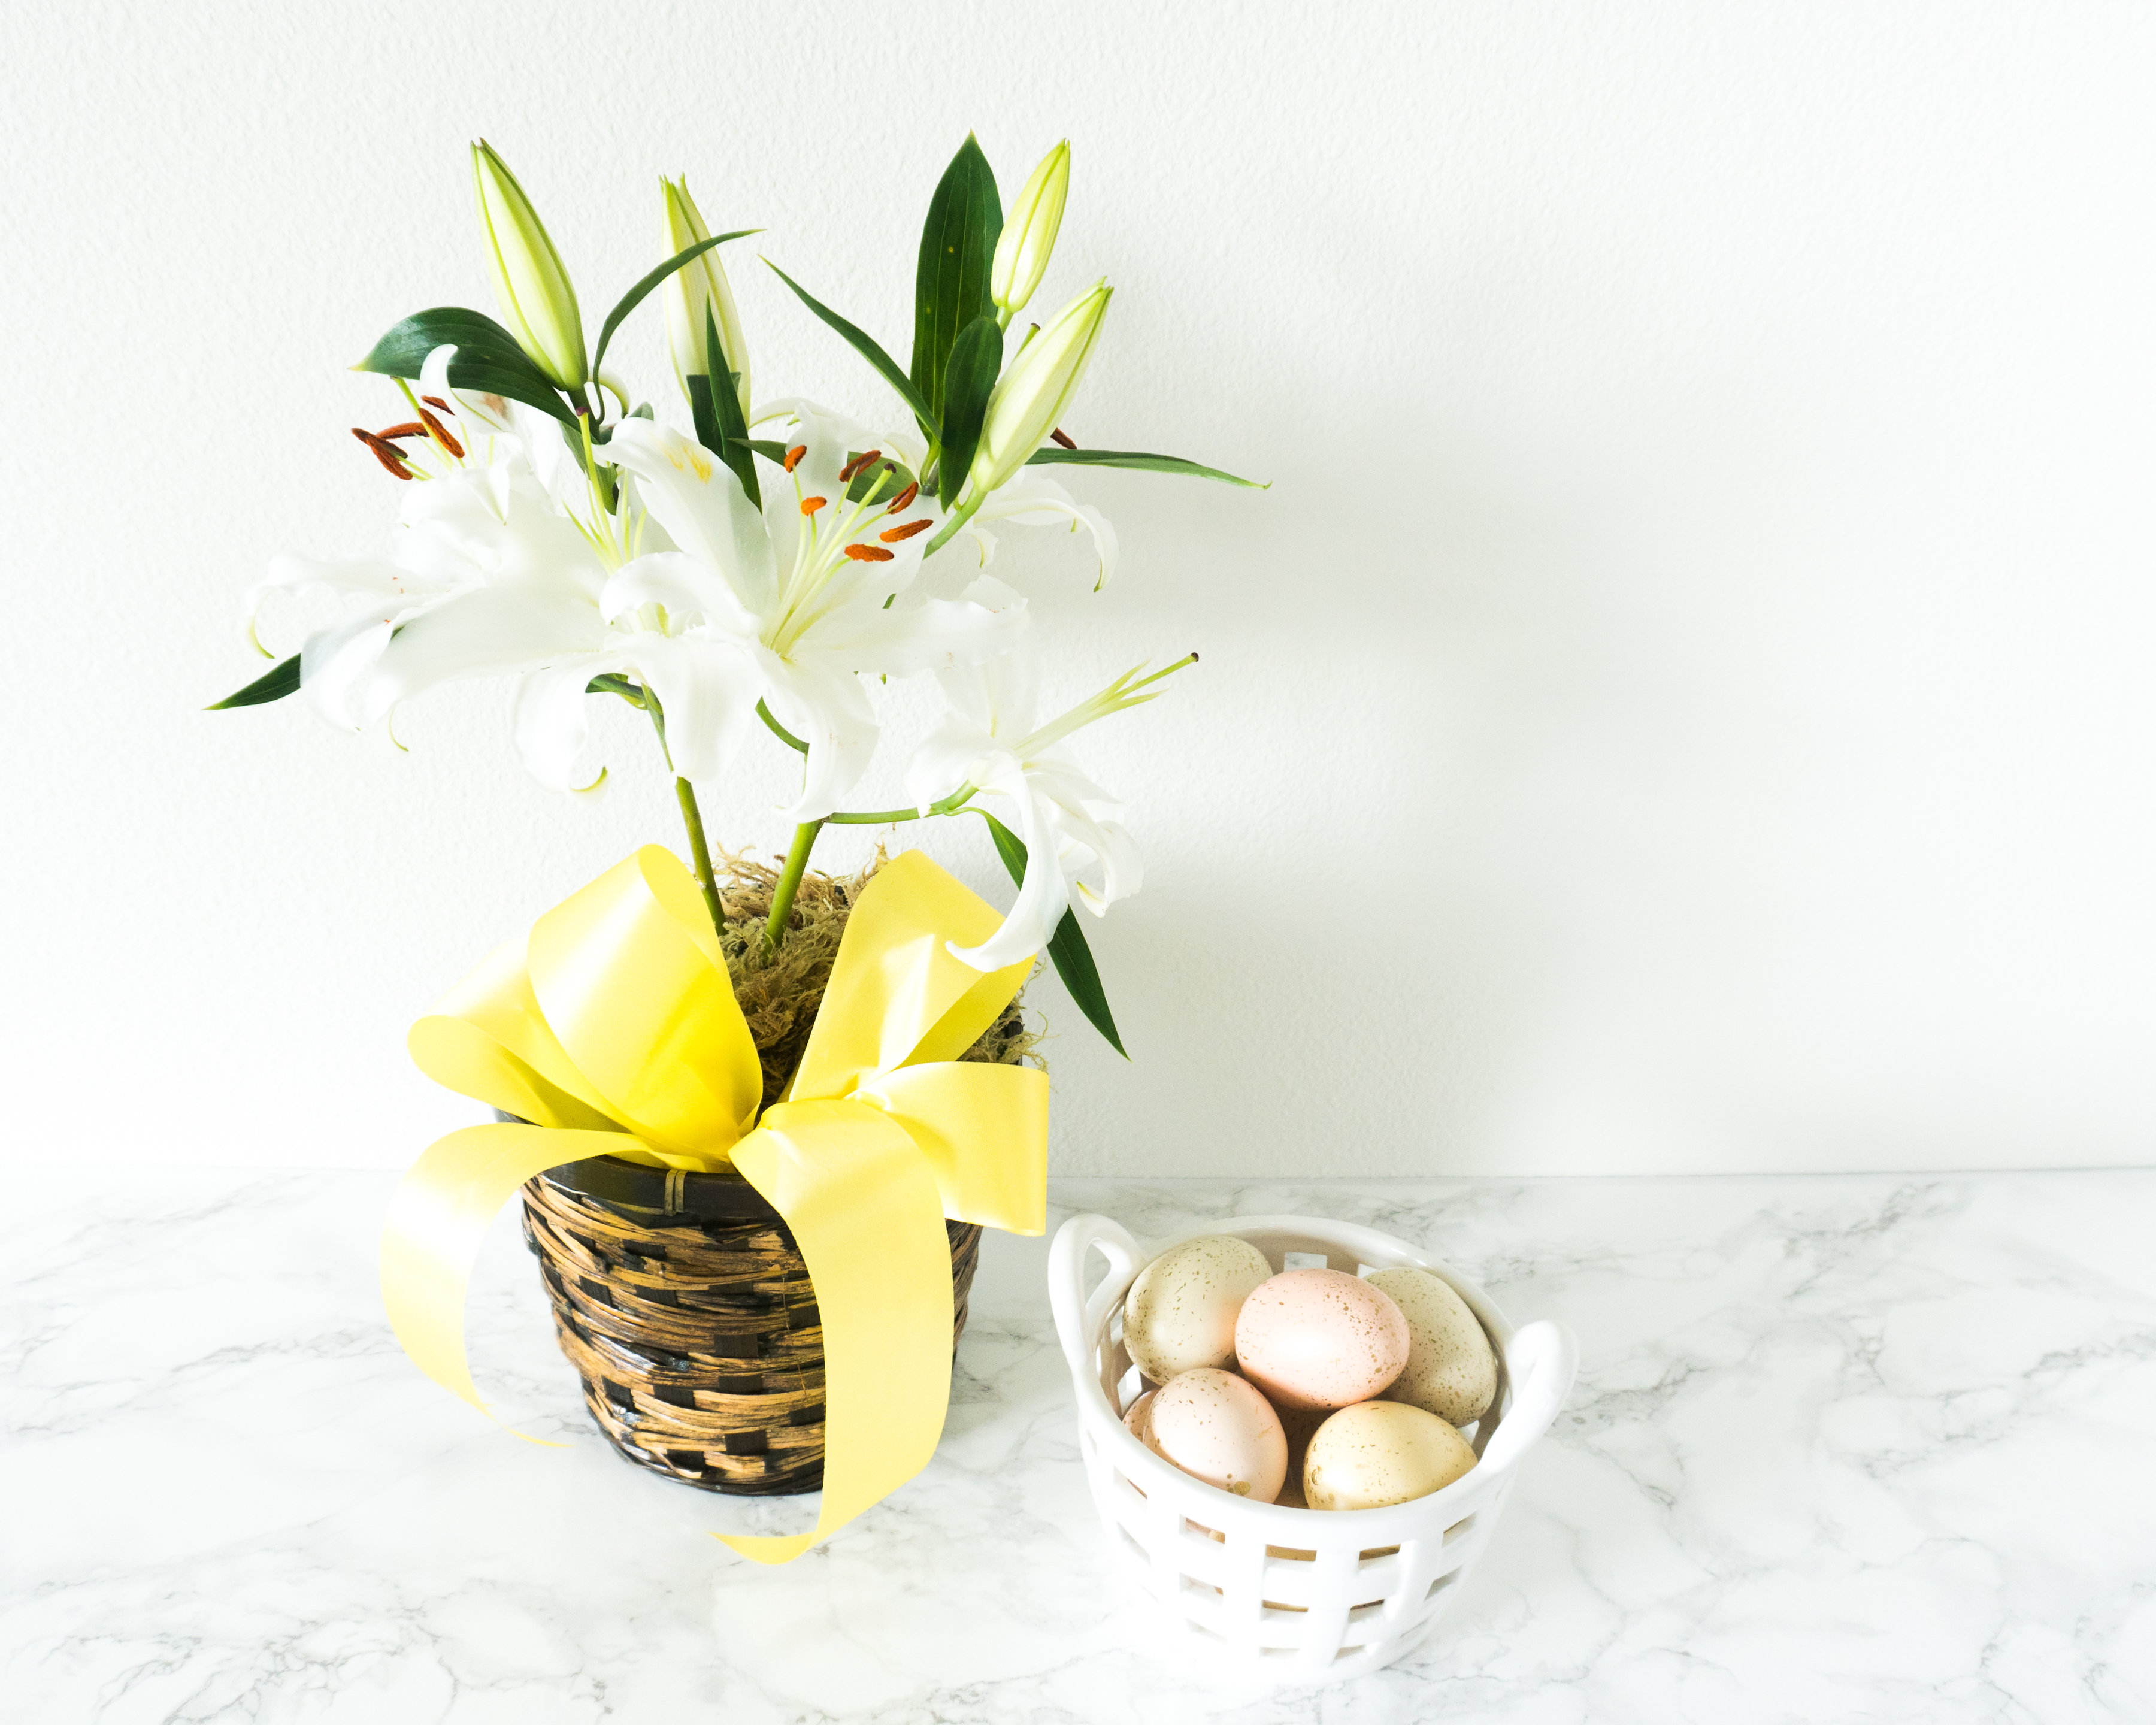 Learn about the Easter Lily Flower